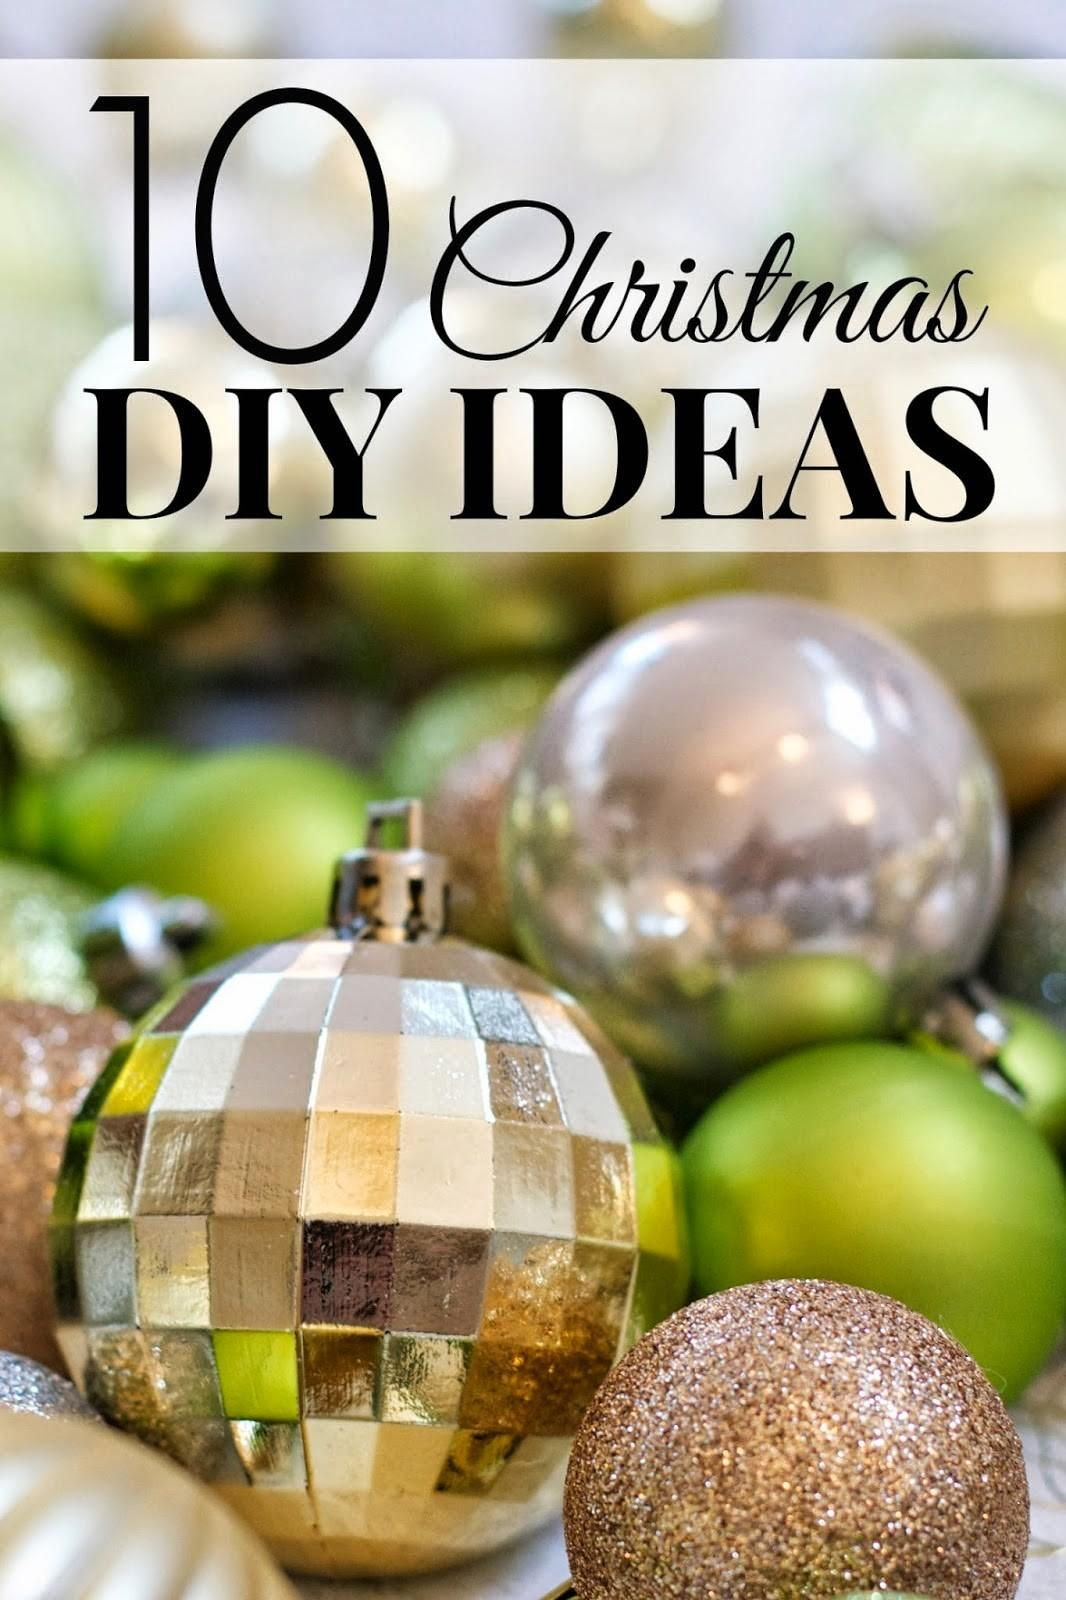 Christmas Diy Ideas Craft Projects